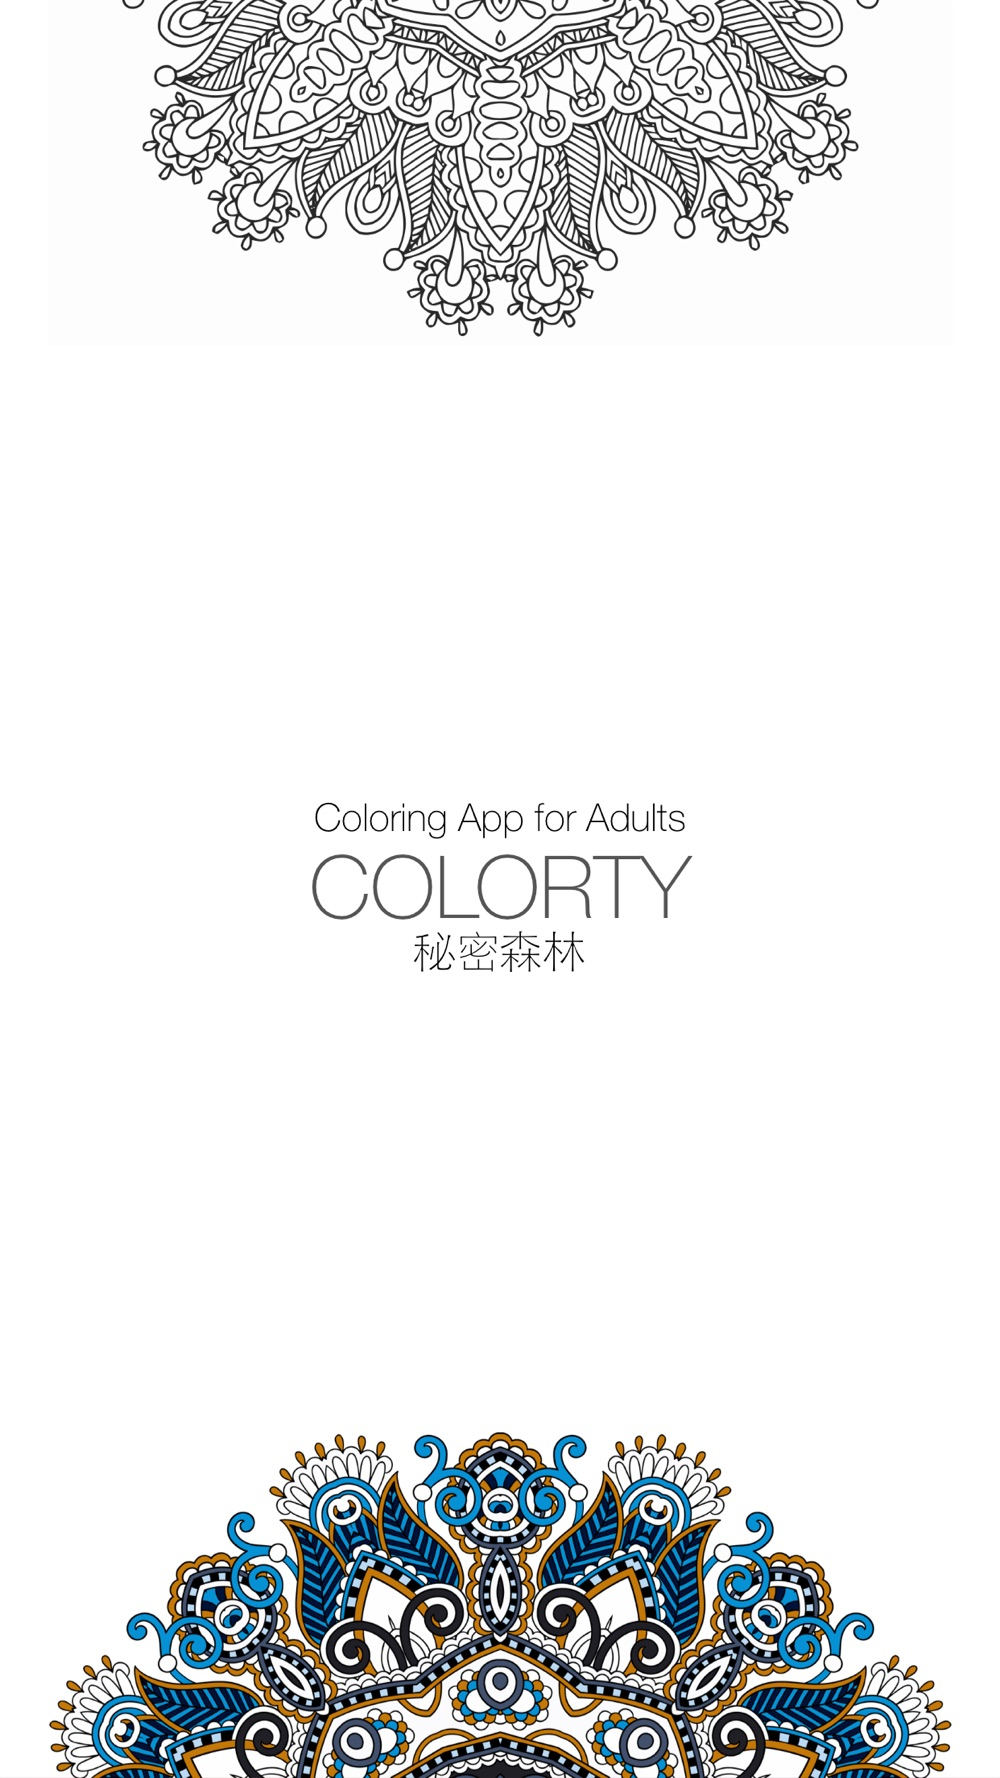 Colorty: Best Coloring Book for Adults hack tool